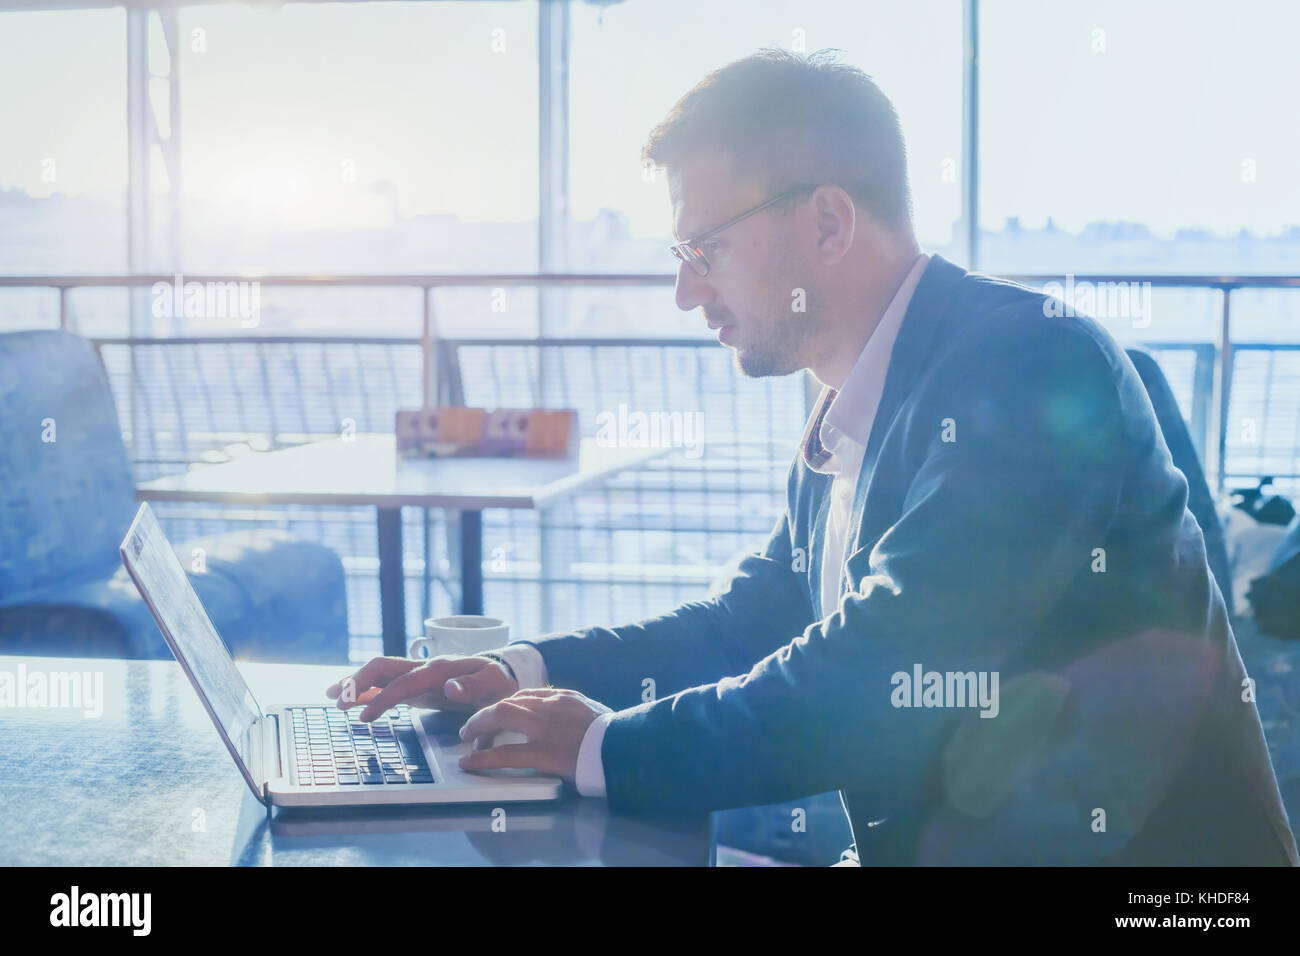 businessman working on computer in modern interior of airport cafe, man using internet on laptop, typing email, - Stock Image